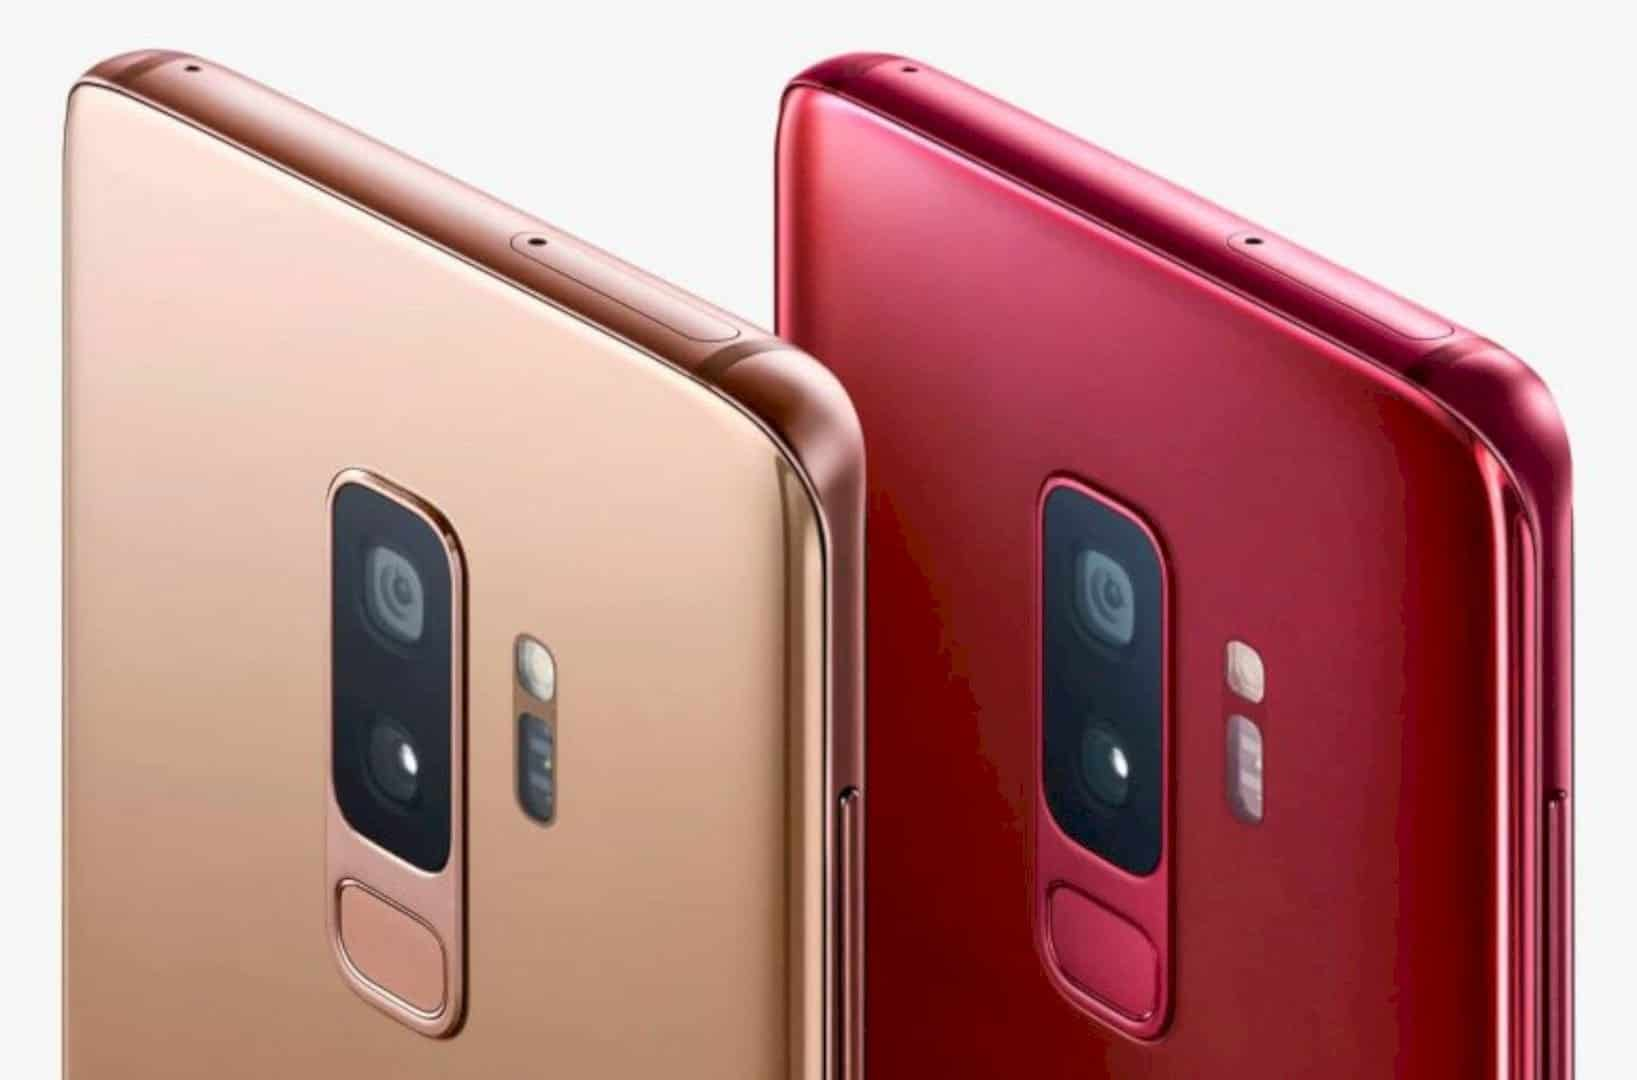 Sunrise Gold And Burgundy Red Editions For Galaxy S9 And S9 1